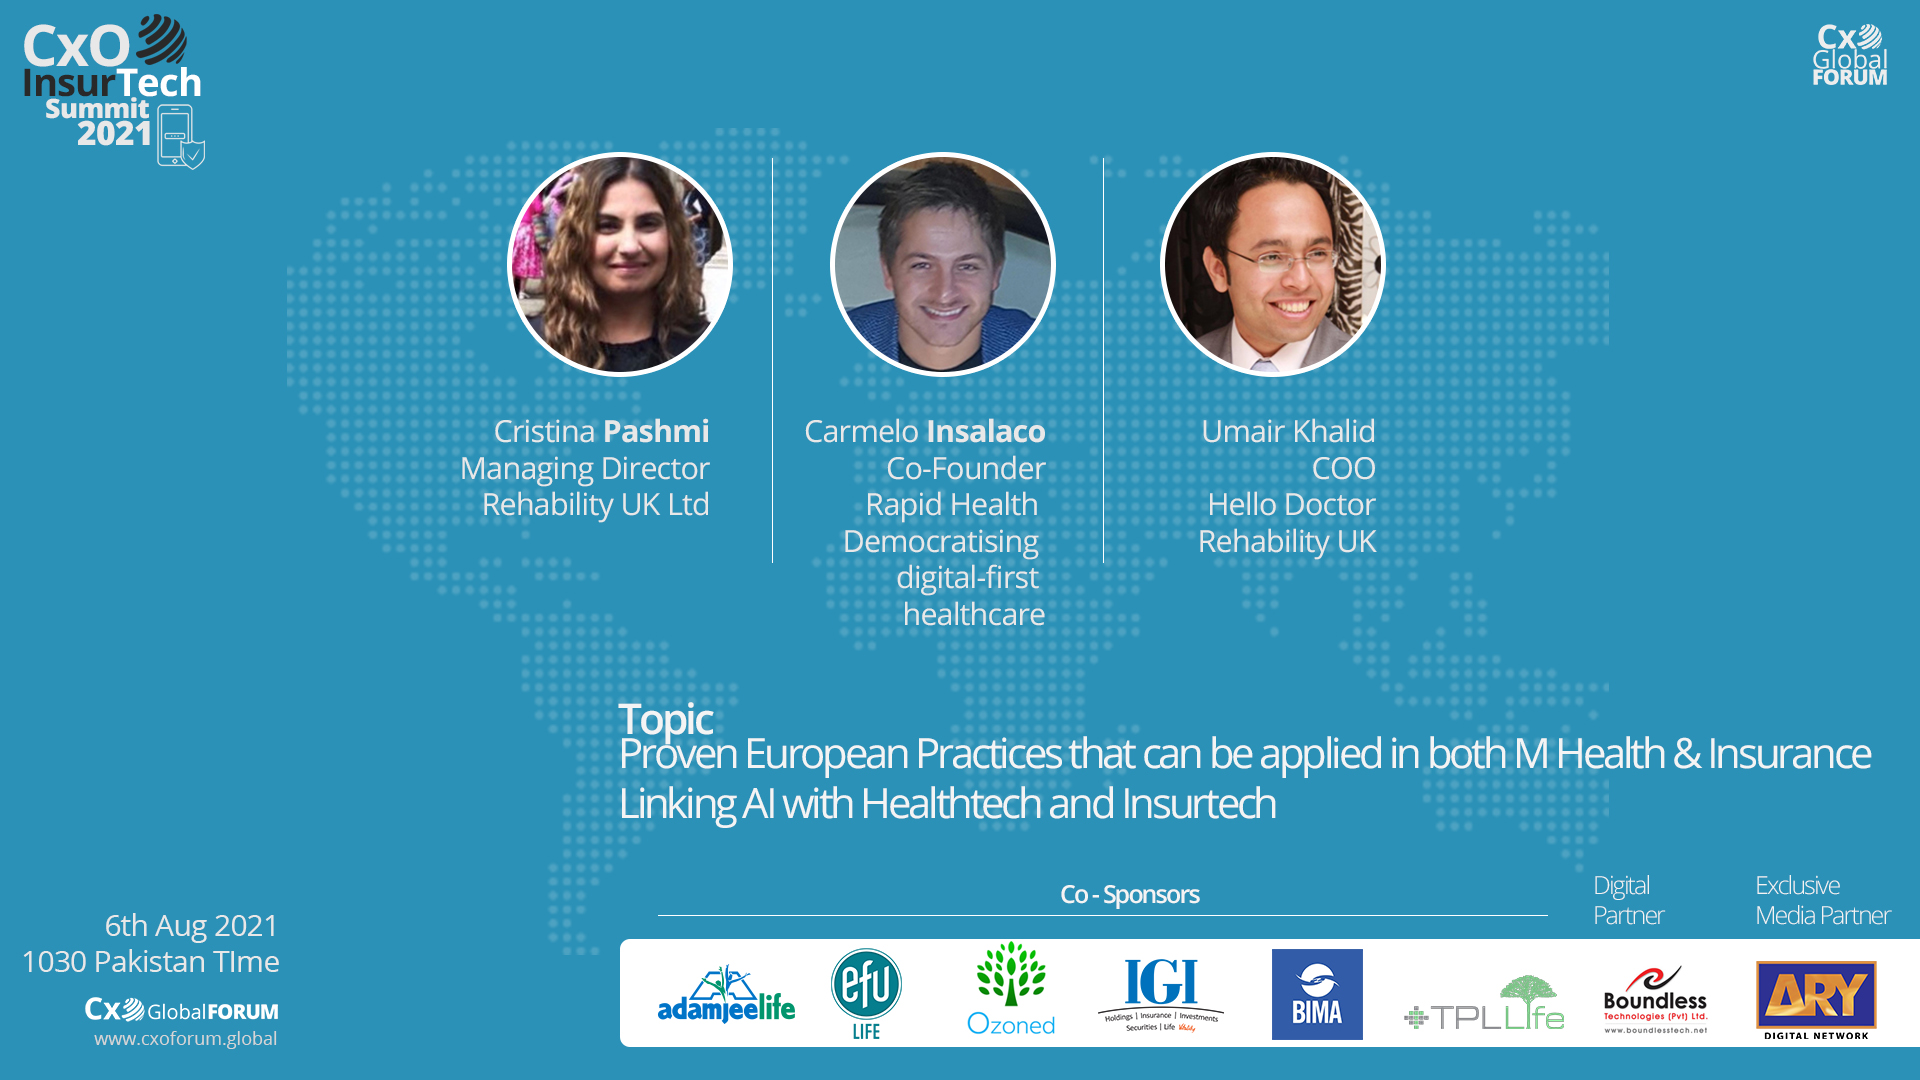 Proven European Practices that can be applied in both M Health and Insurance